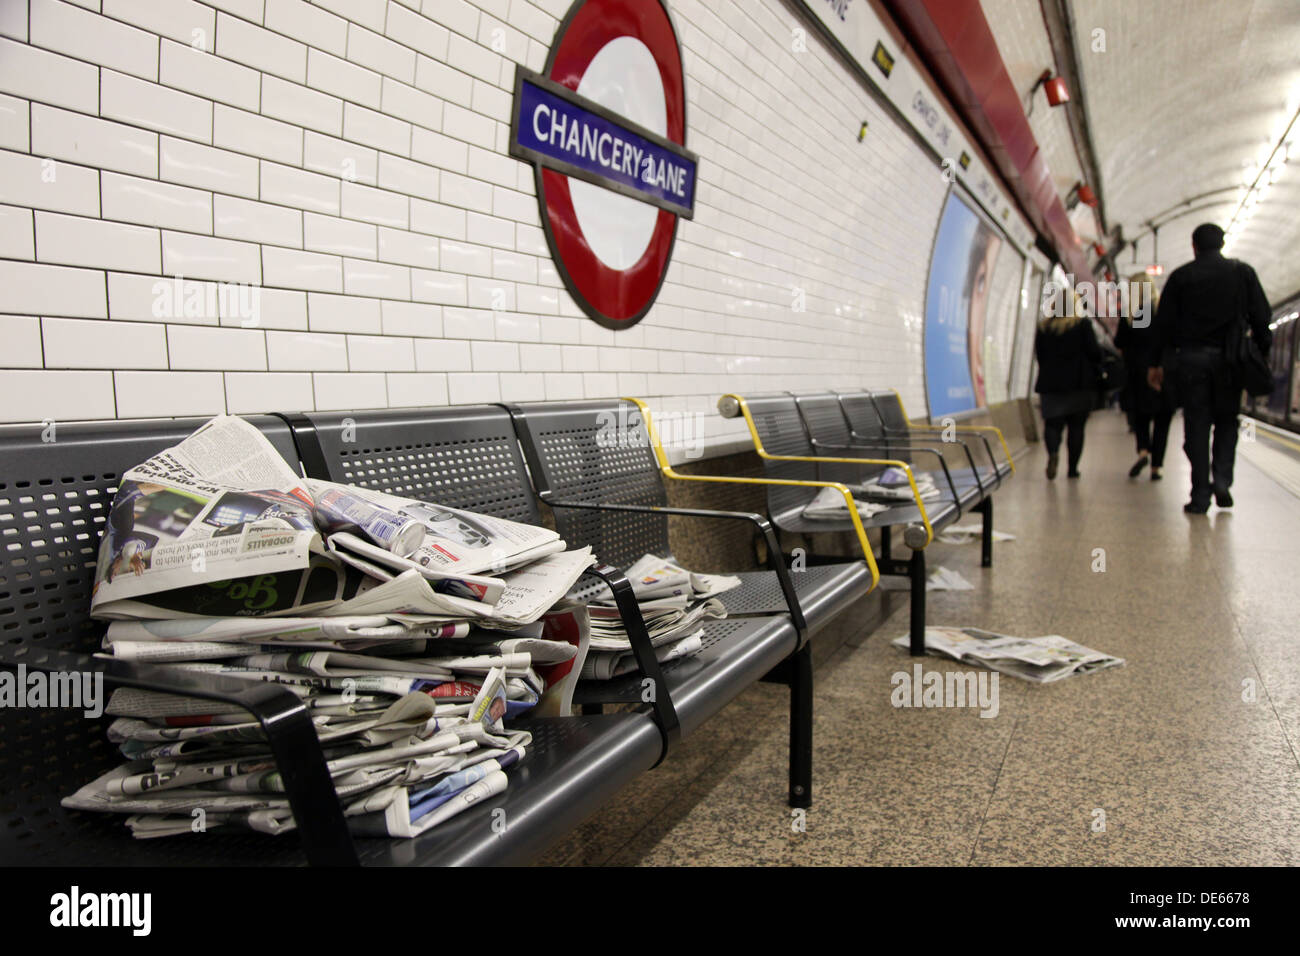 Free newspapers dumped on a bench at Chancery Lane Underground Station, during the morning commute. - Stock Image